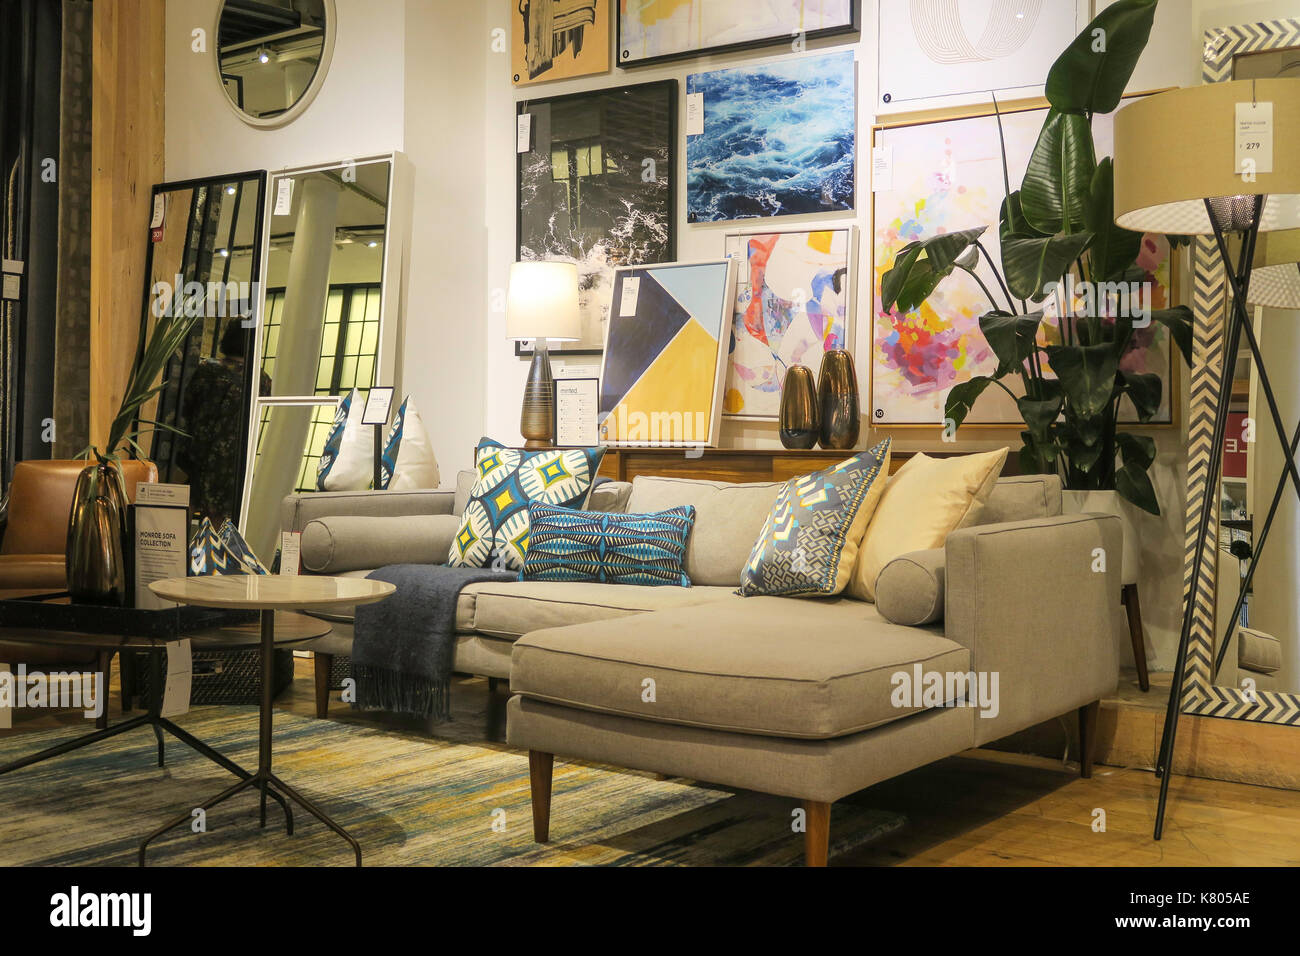 West Elm Stock Photos West Elm Stock Images Alamy Home Decorators Catalog Best Ideas of Home Decor and Design [homedecoratorscatalog.us]